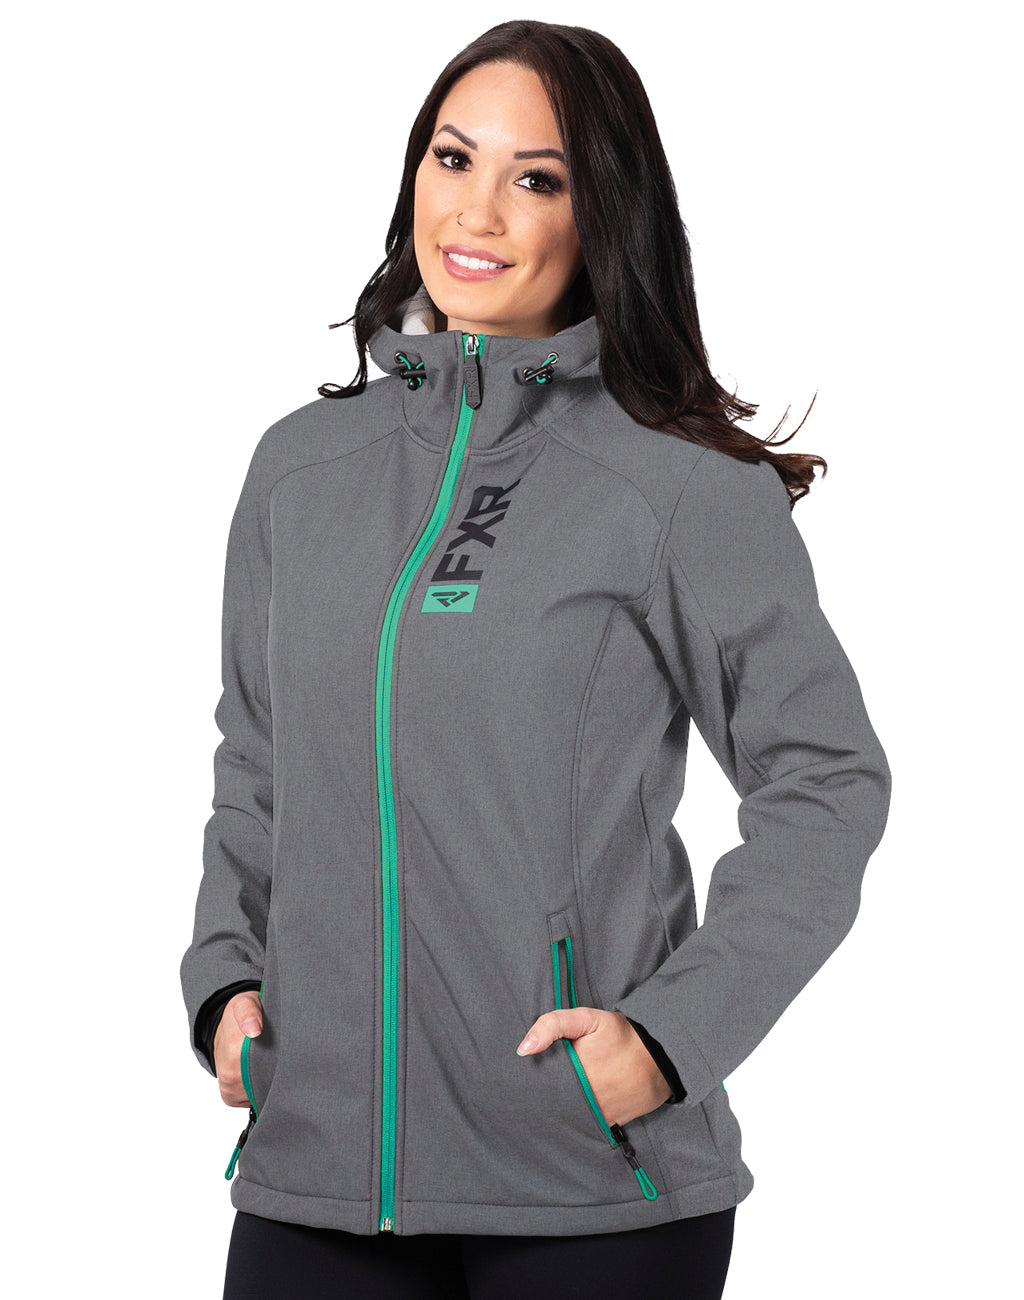 Women's FXR Pulse Softshell Jacket